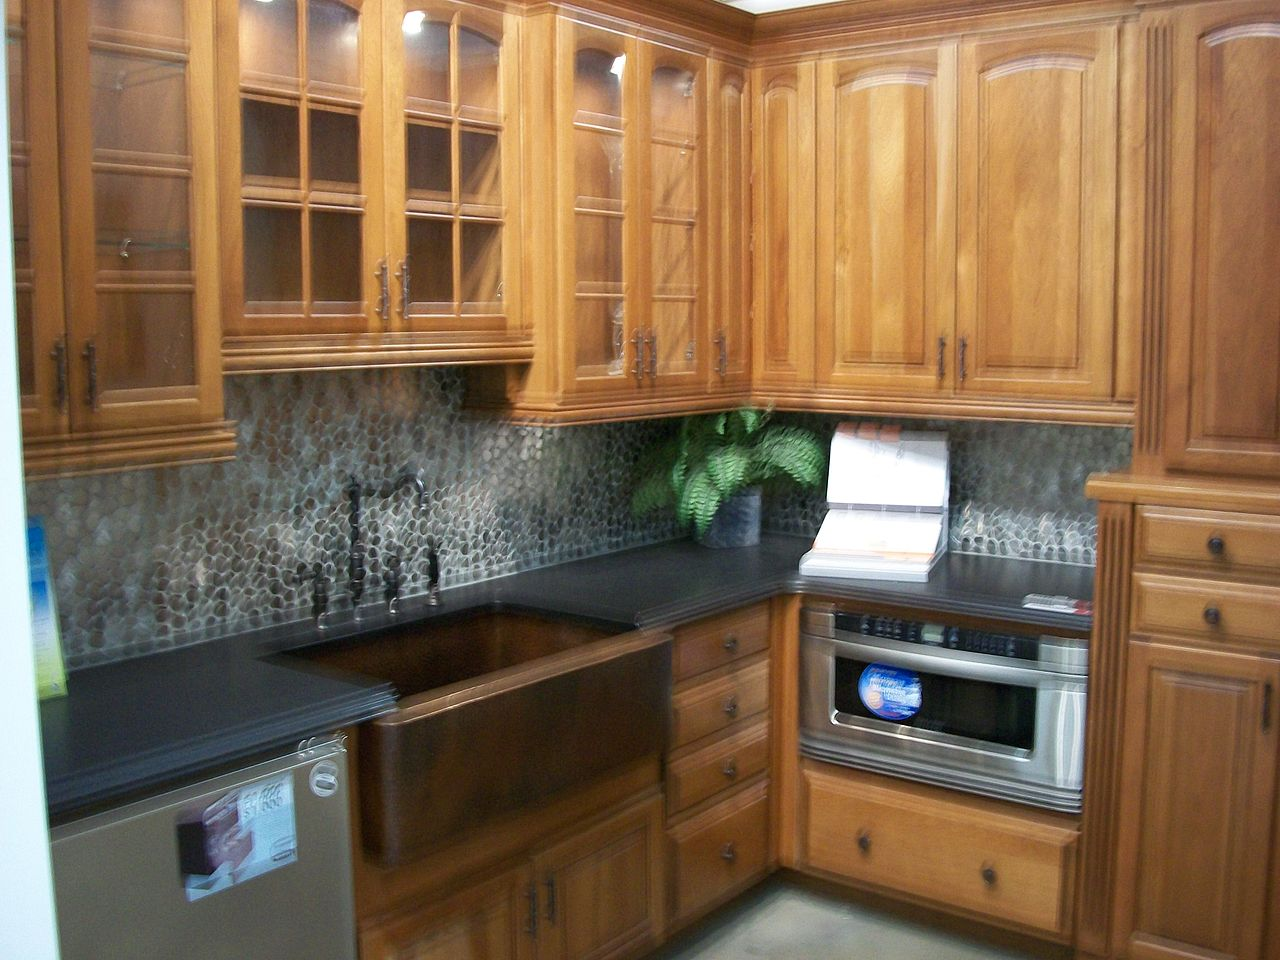 File:Kitchen cabinet display 2009 with bend.jpg - Wikimedia ...